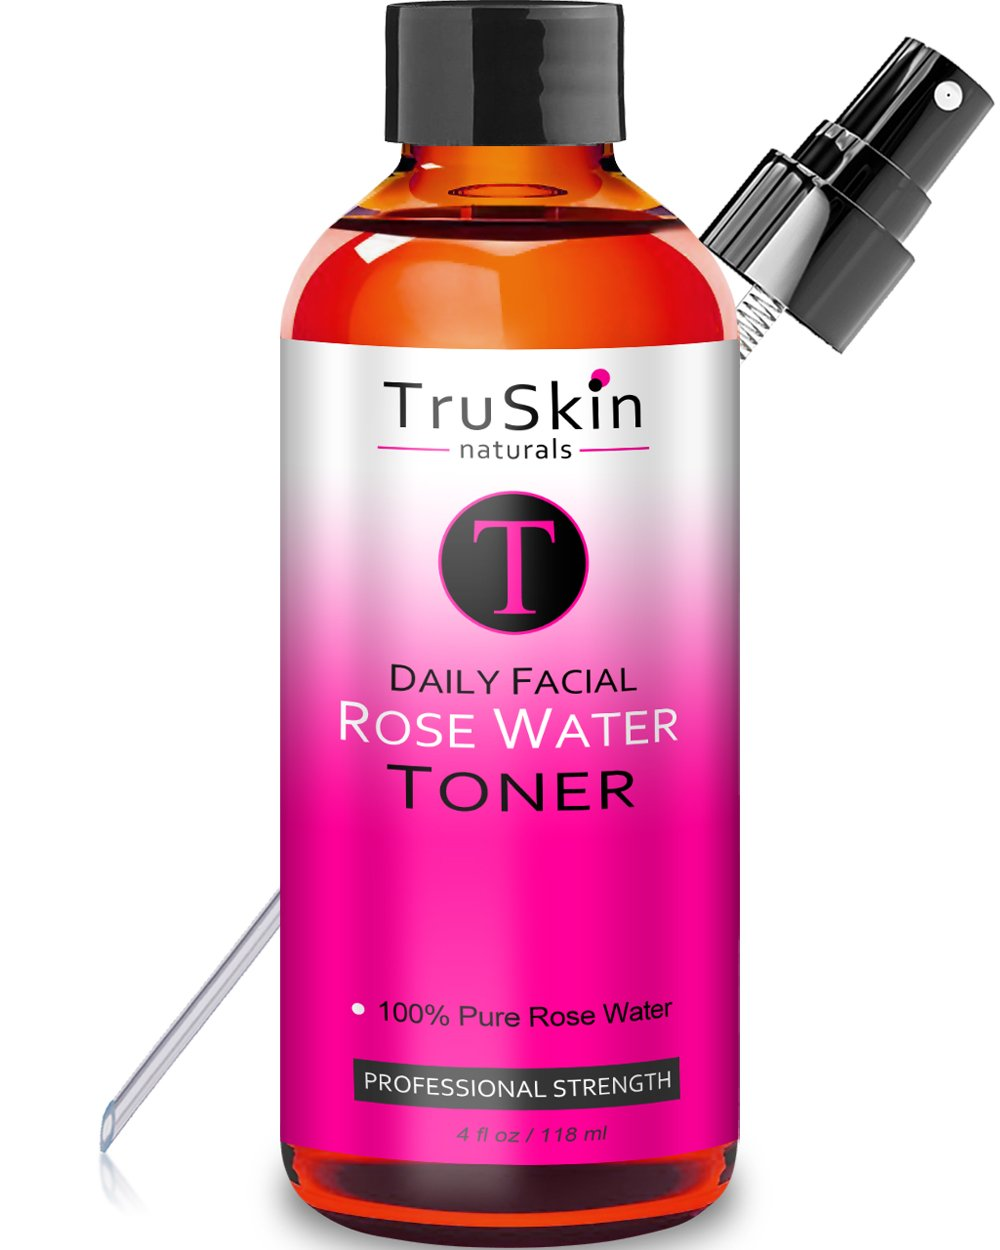 Rose Water Facial Toner Spray - Natural Astringent Face Mist - No artificial fragrance or added chemicals or preservatives - 4 oz by TruSkin Naturals